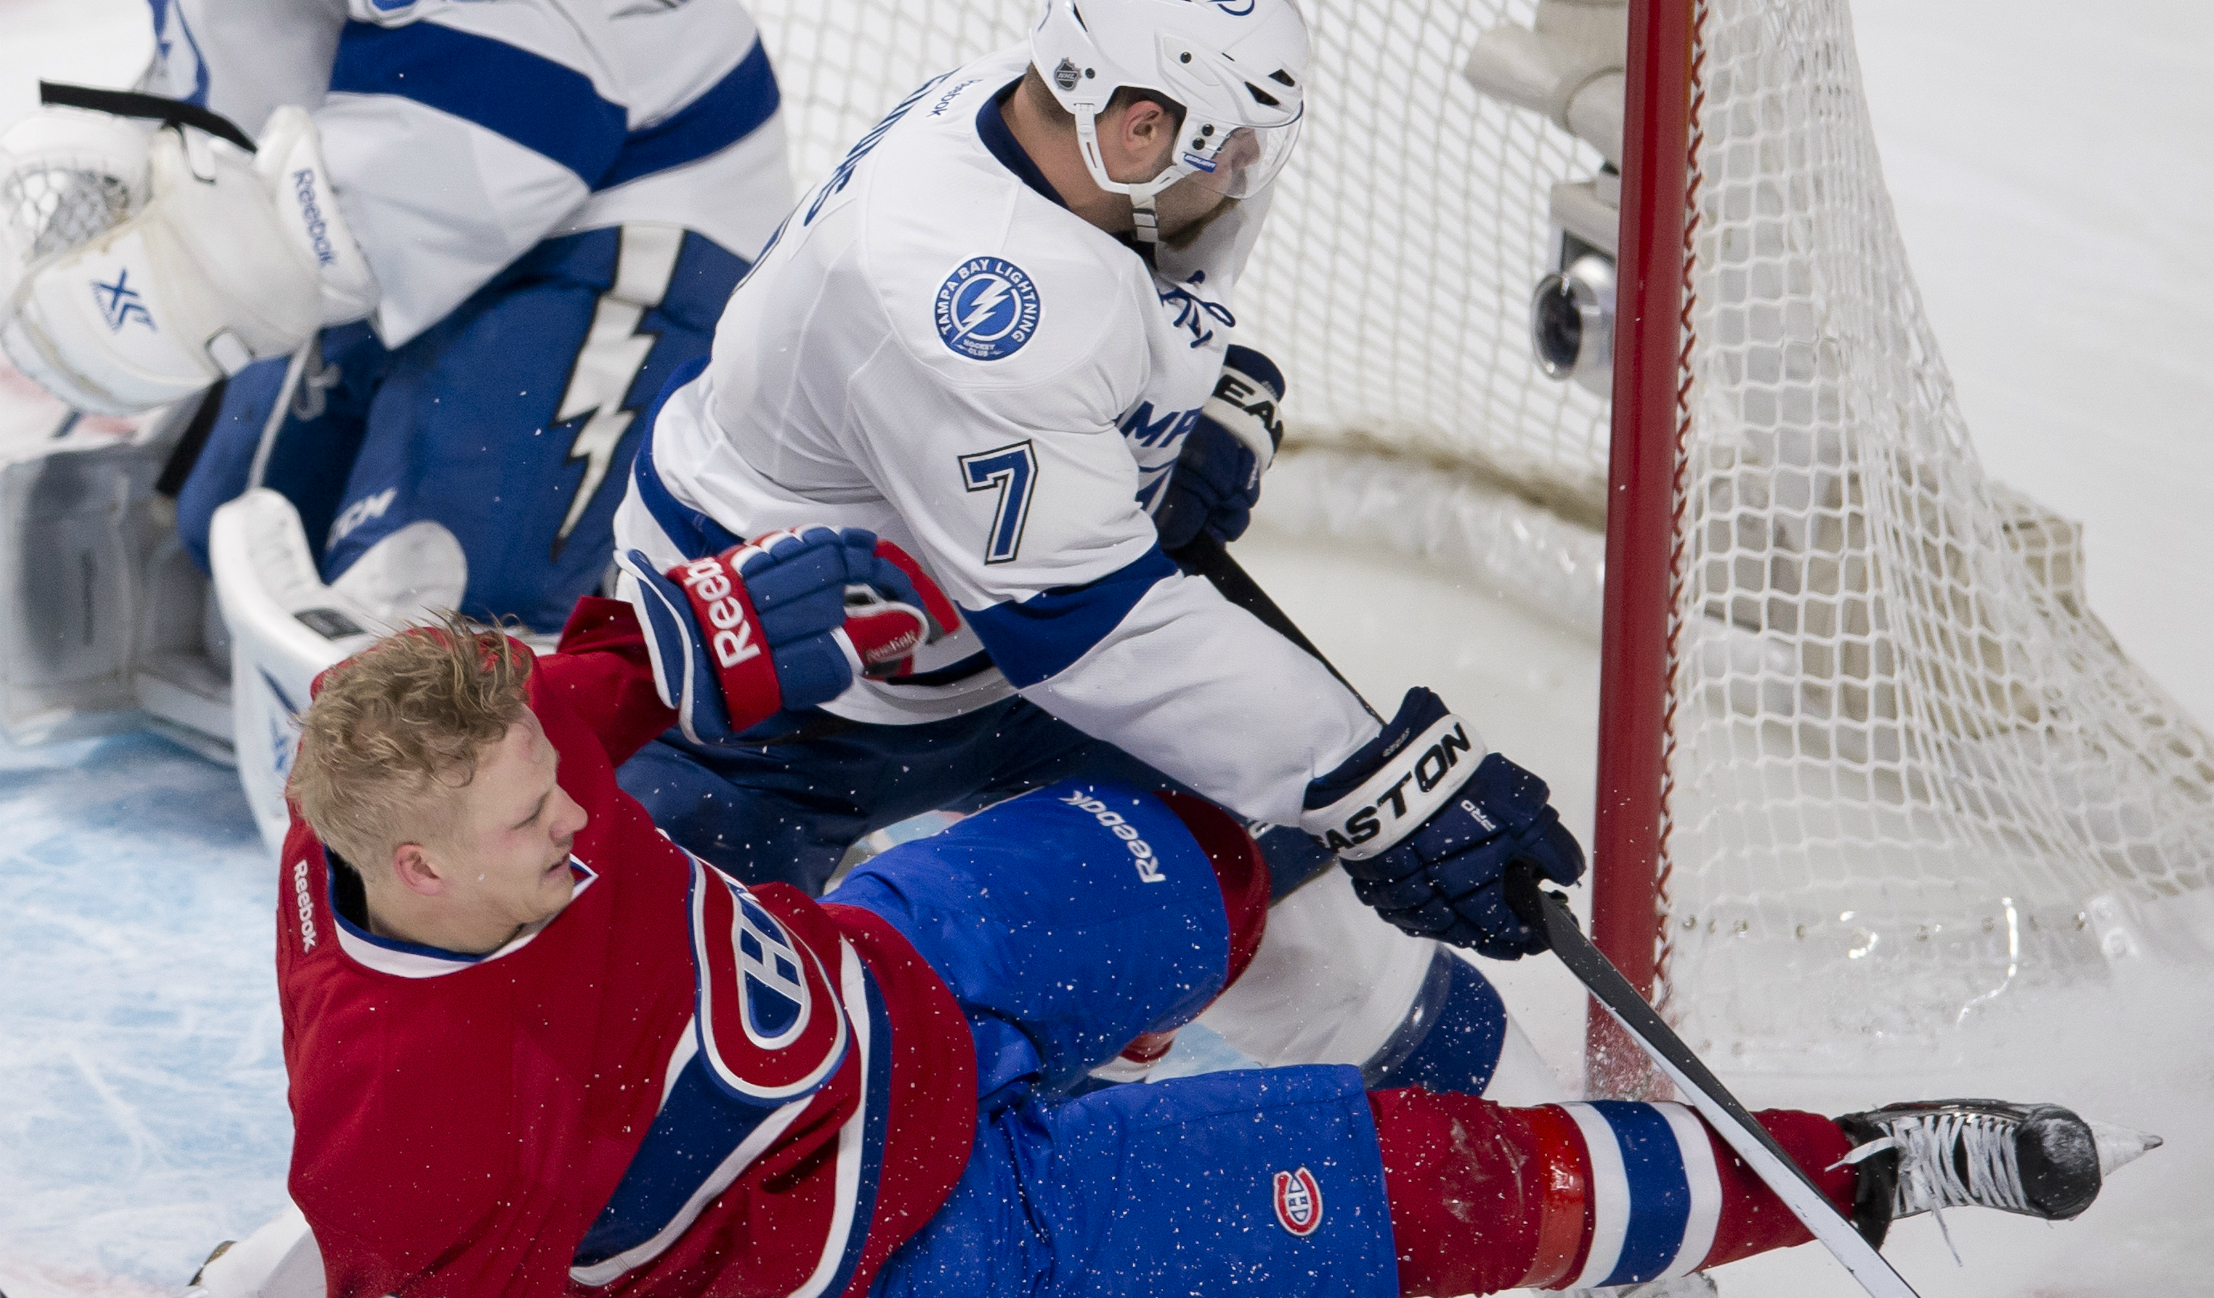 usr_img/64821772/Canadiens Lightning.jpg